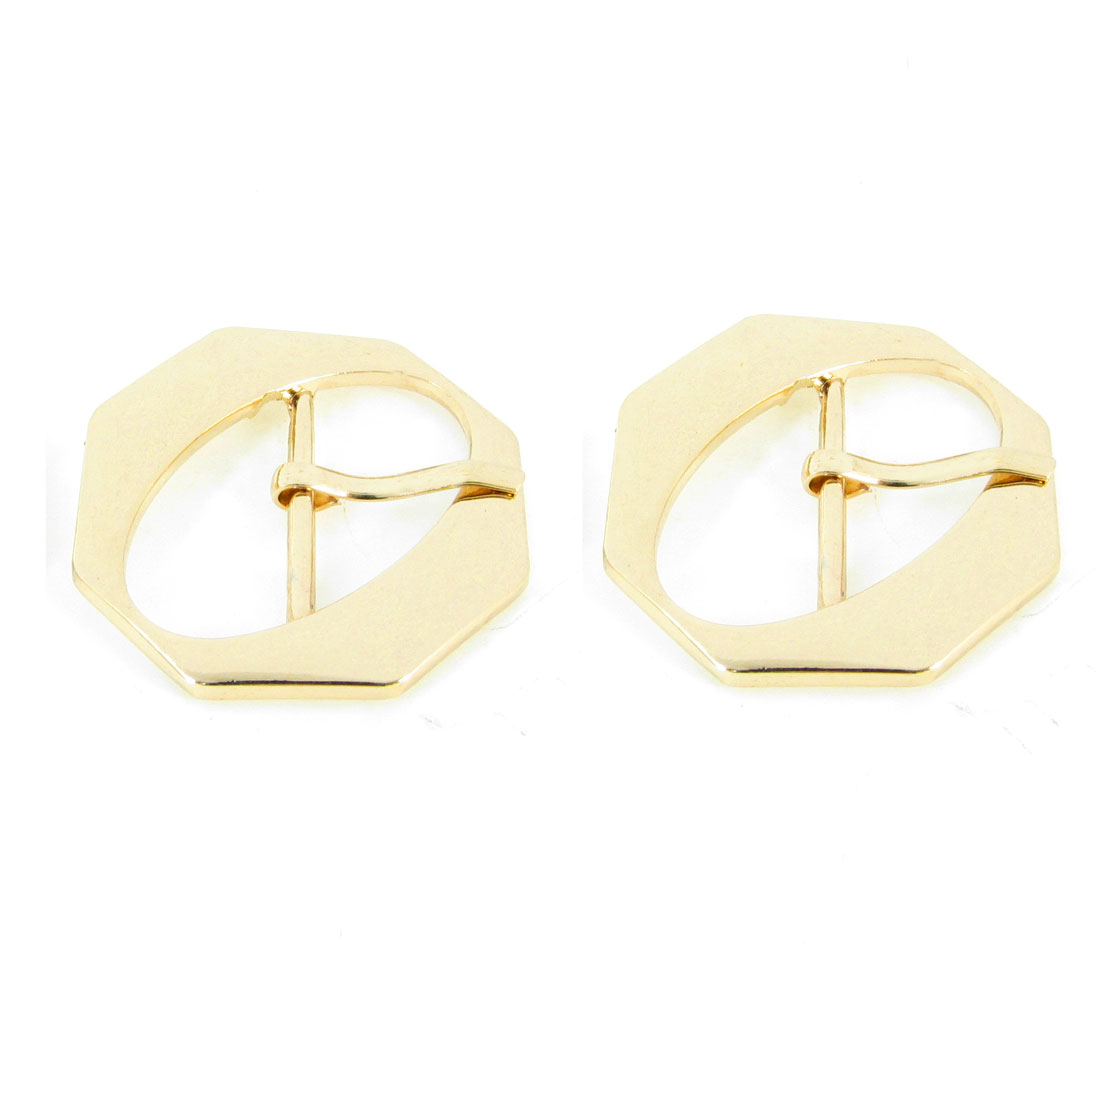 2 Pcs Metal Octagono Shaped High Heel Shoes Component Buckles Gold Tone